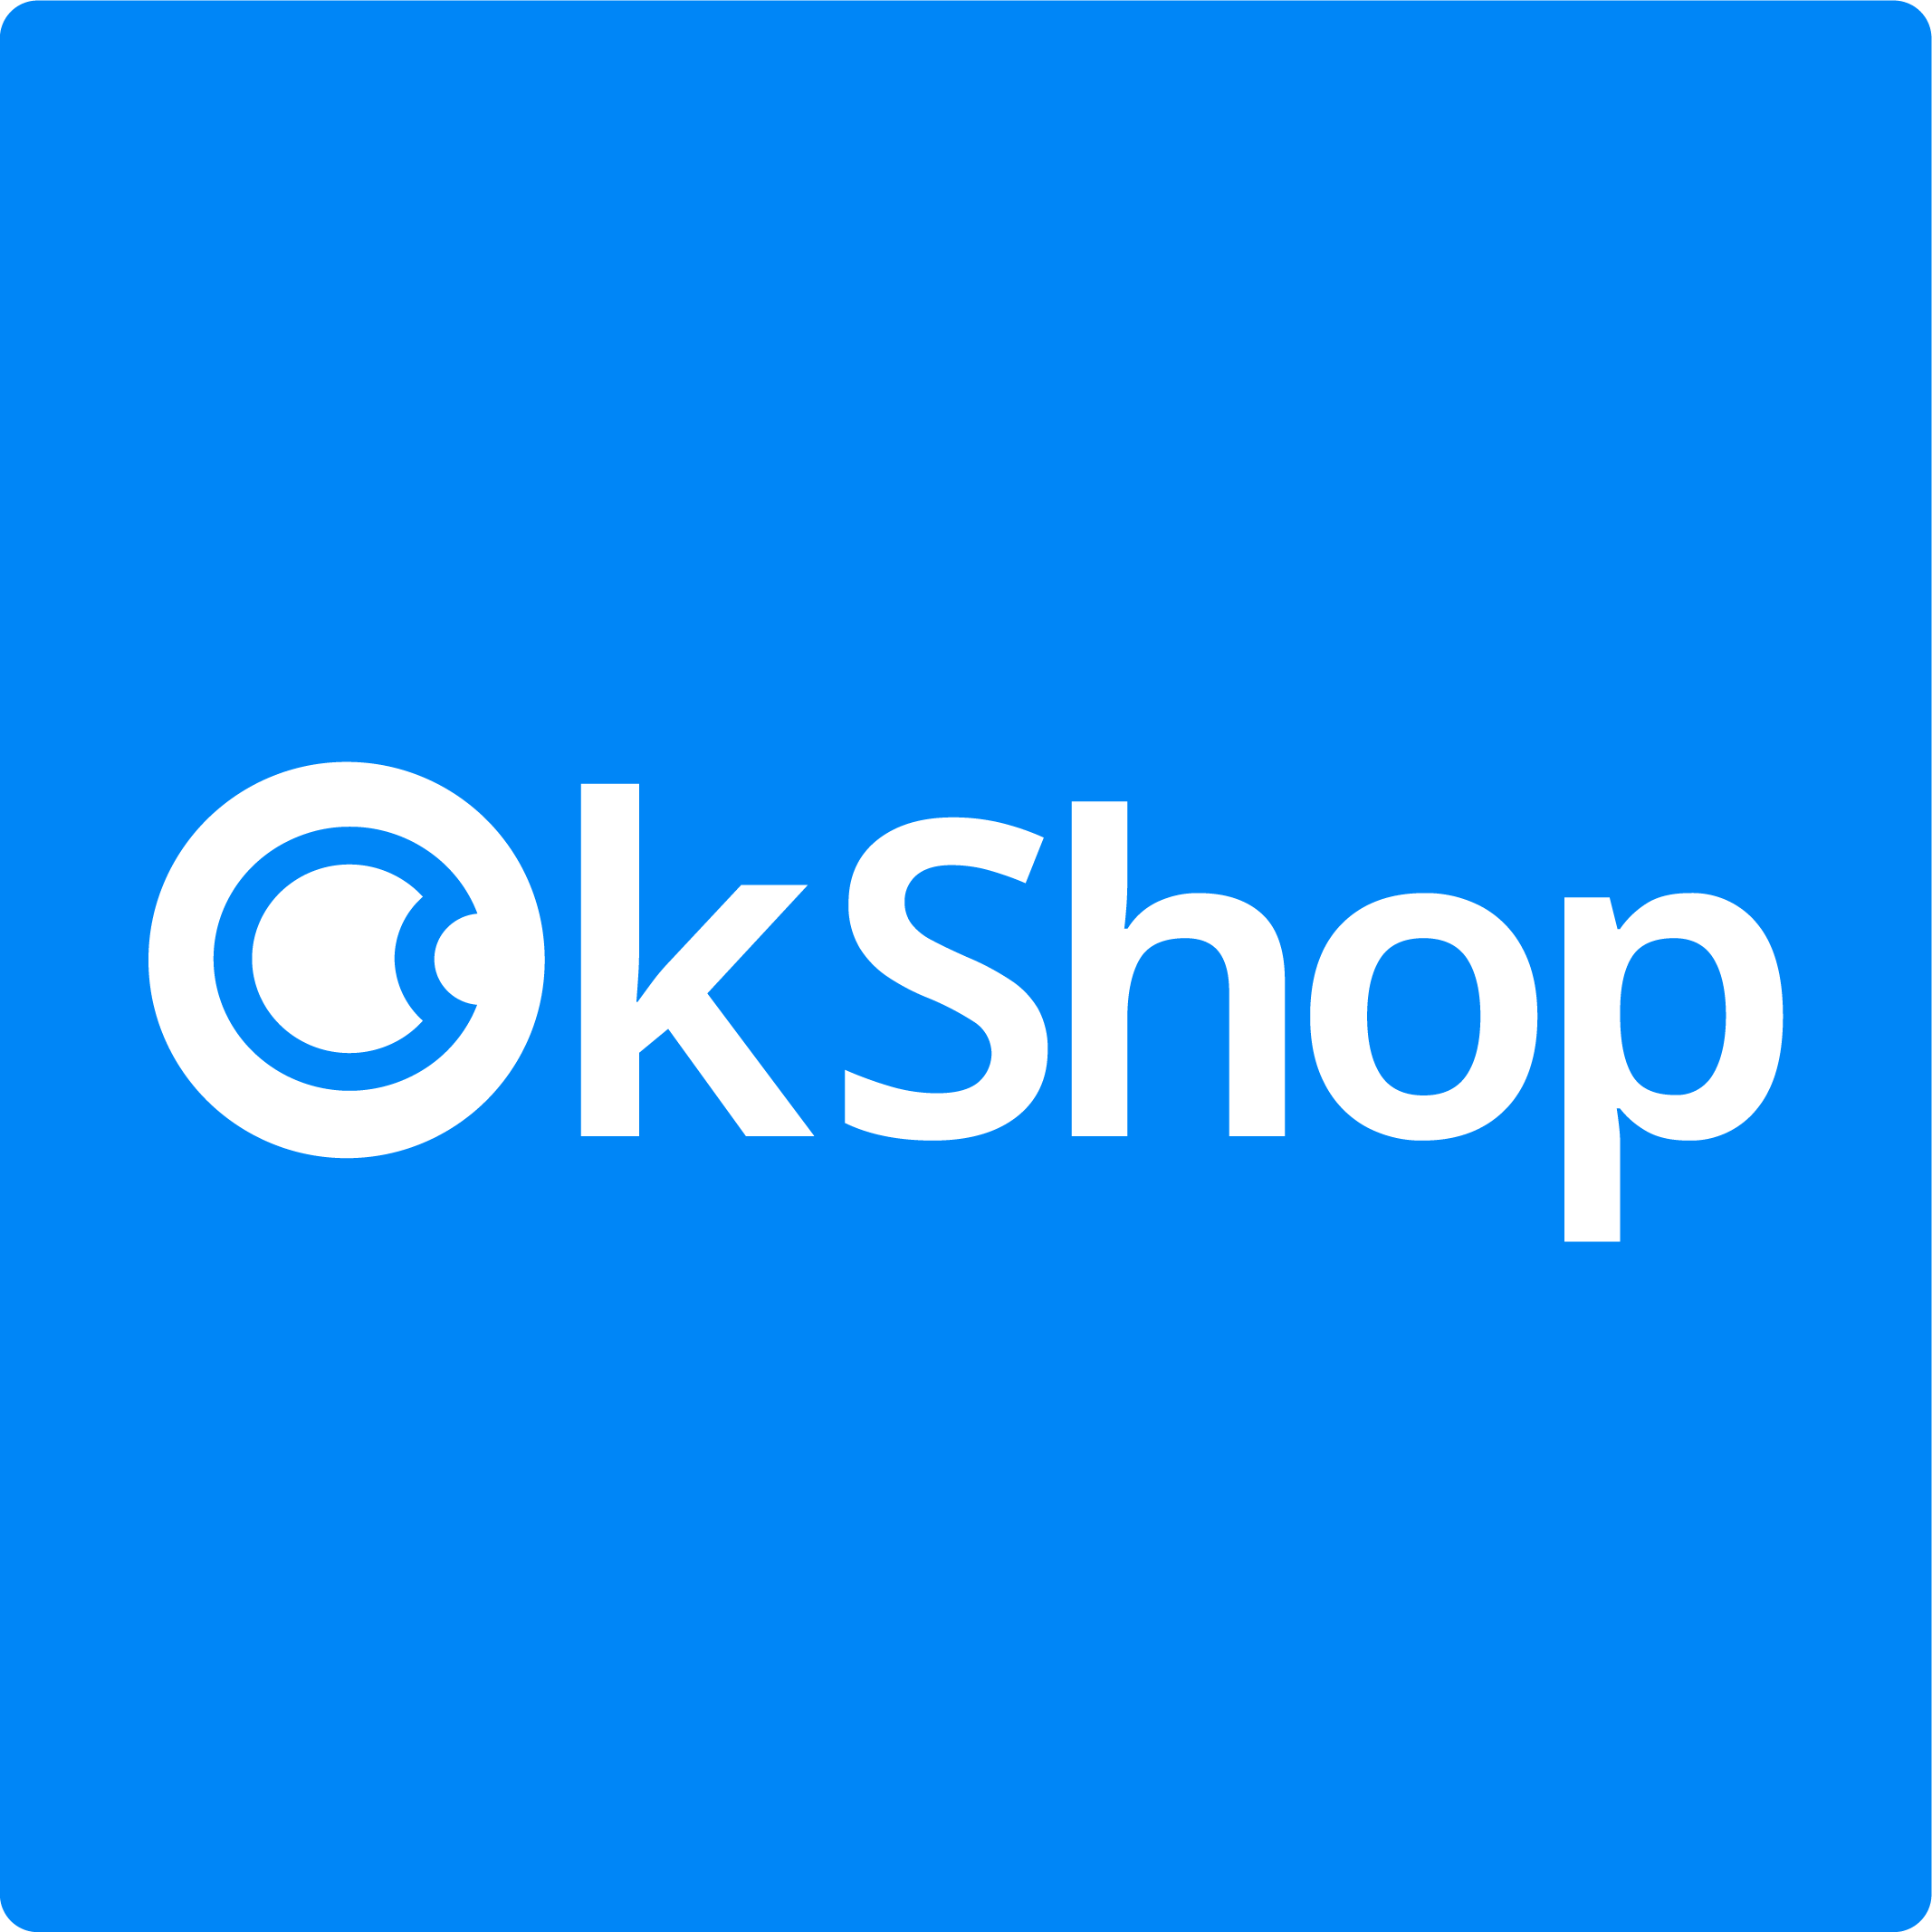 OkShop- India's Online Digital Dukan!